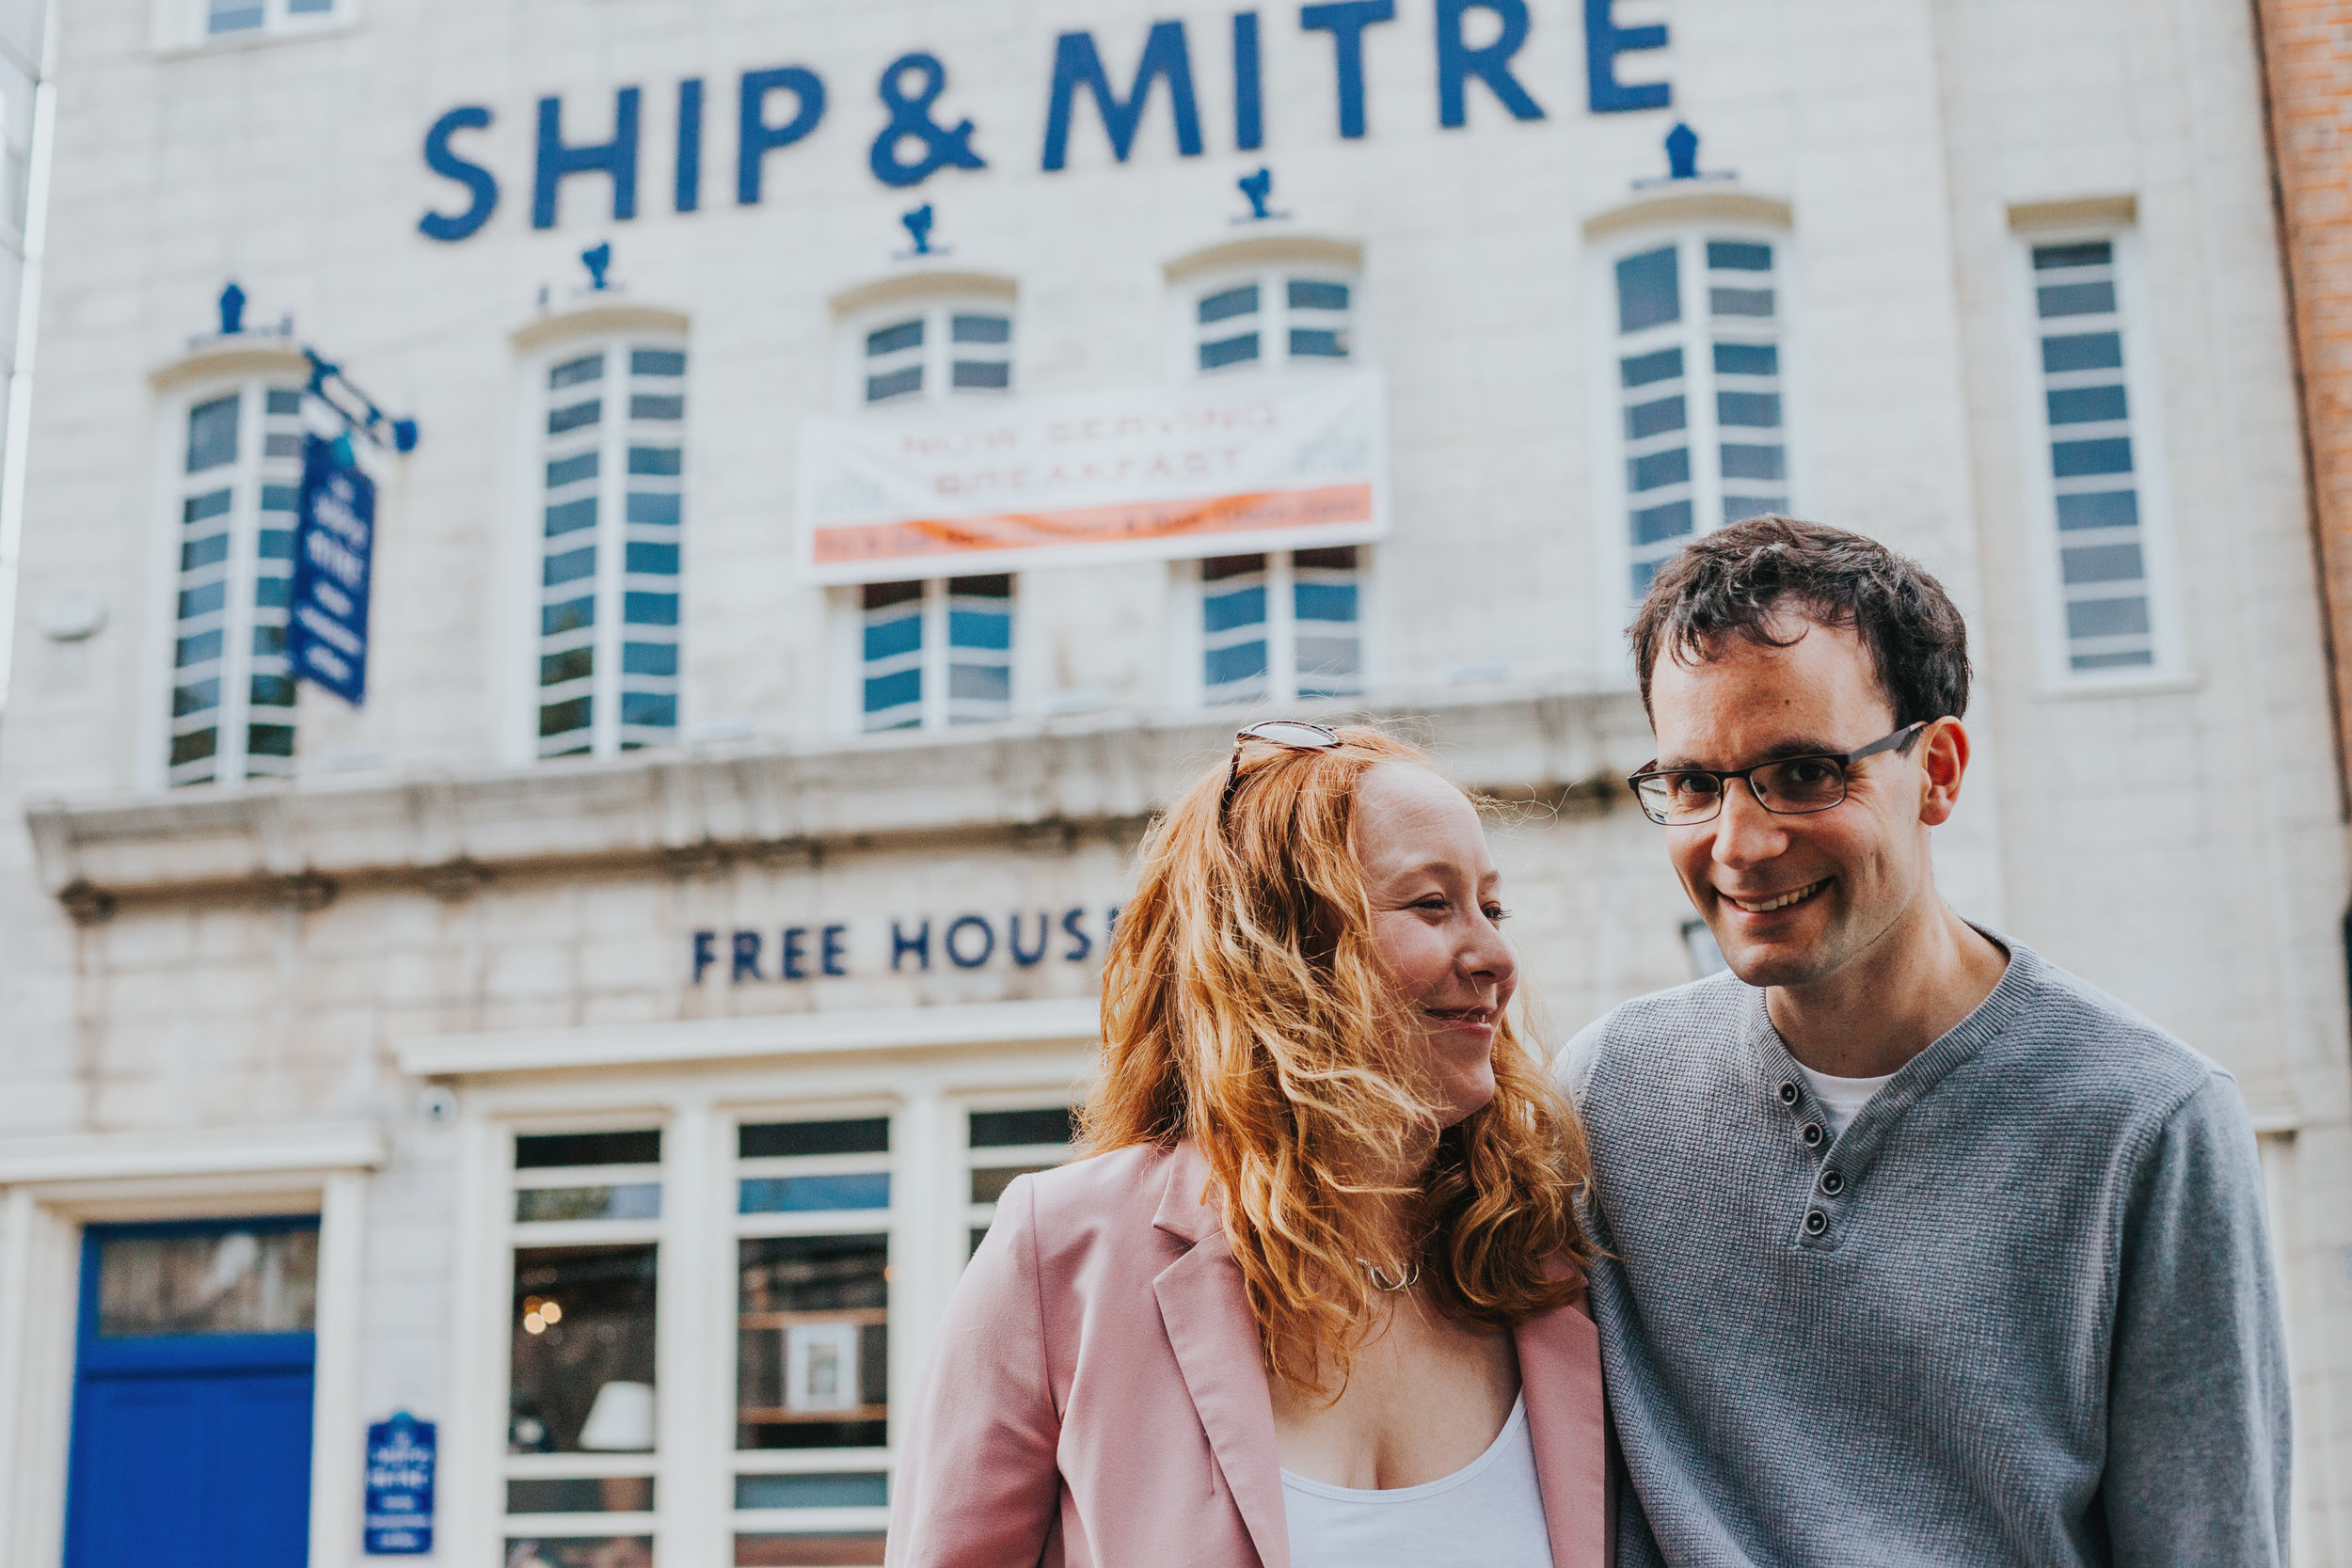 Couple infront of Ship and Mitre Liverpool